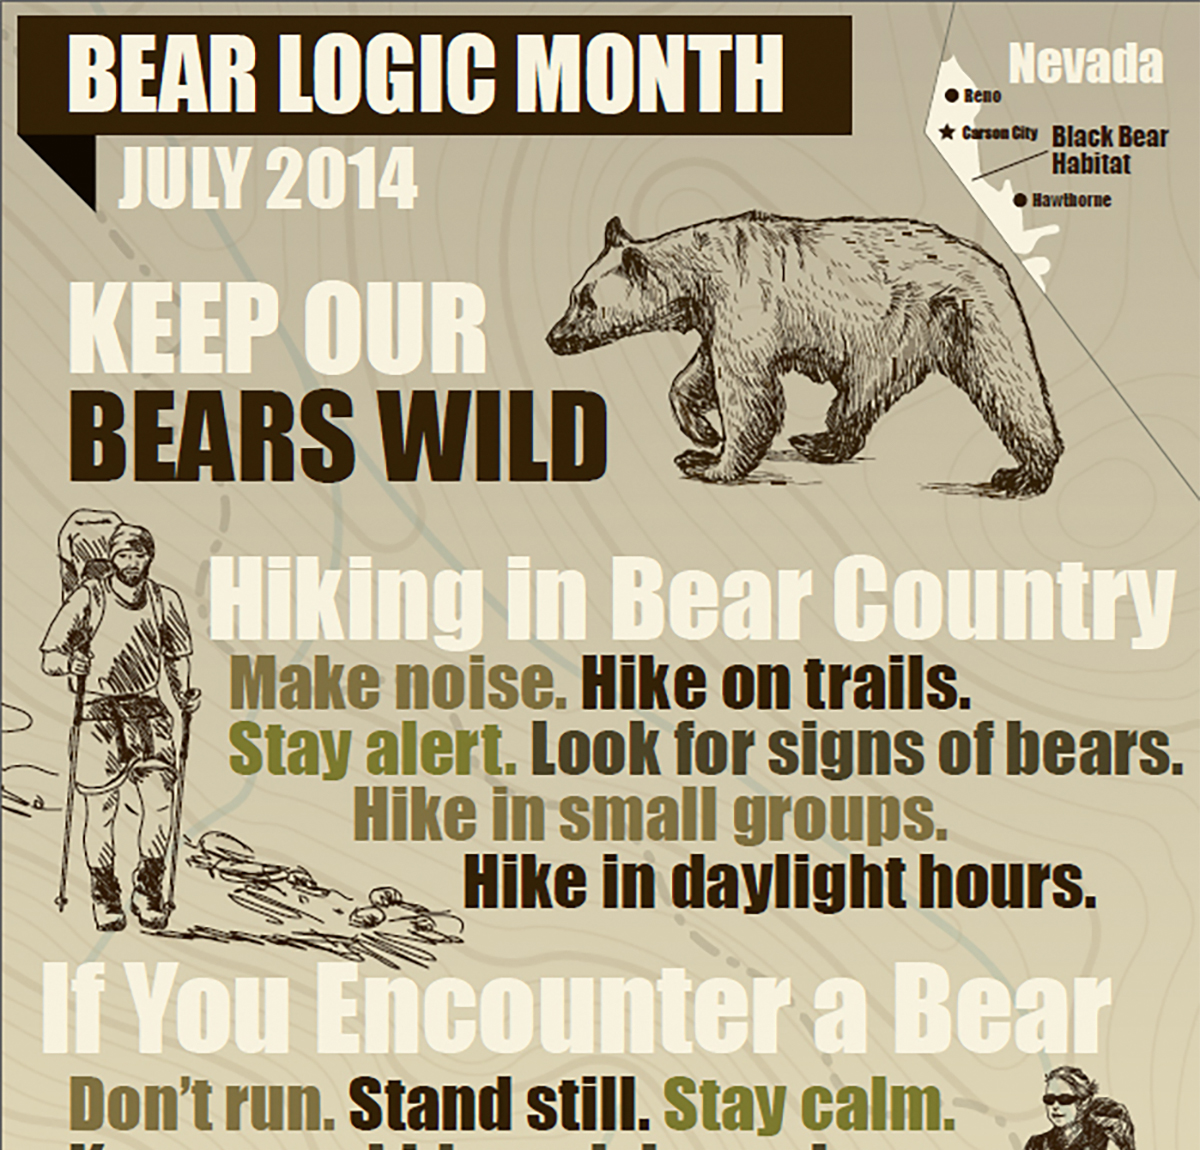 July is Bear Month - Hiking in Bear Country